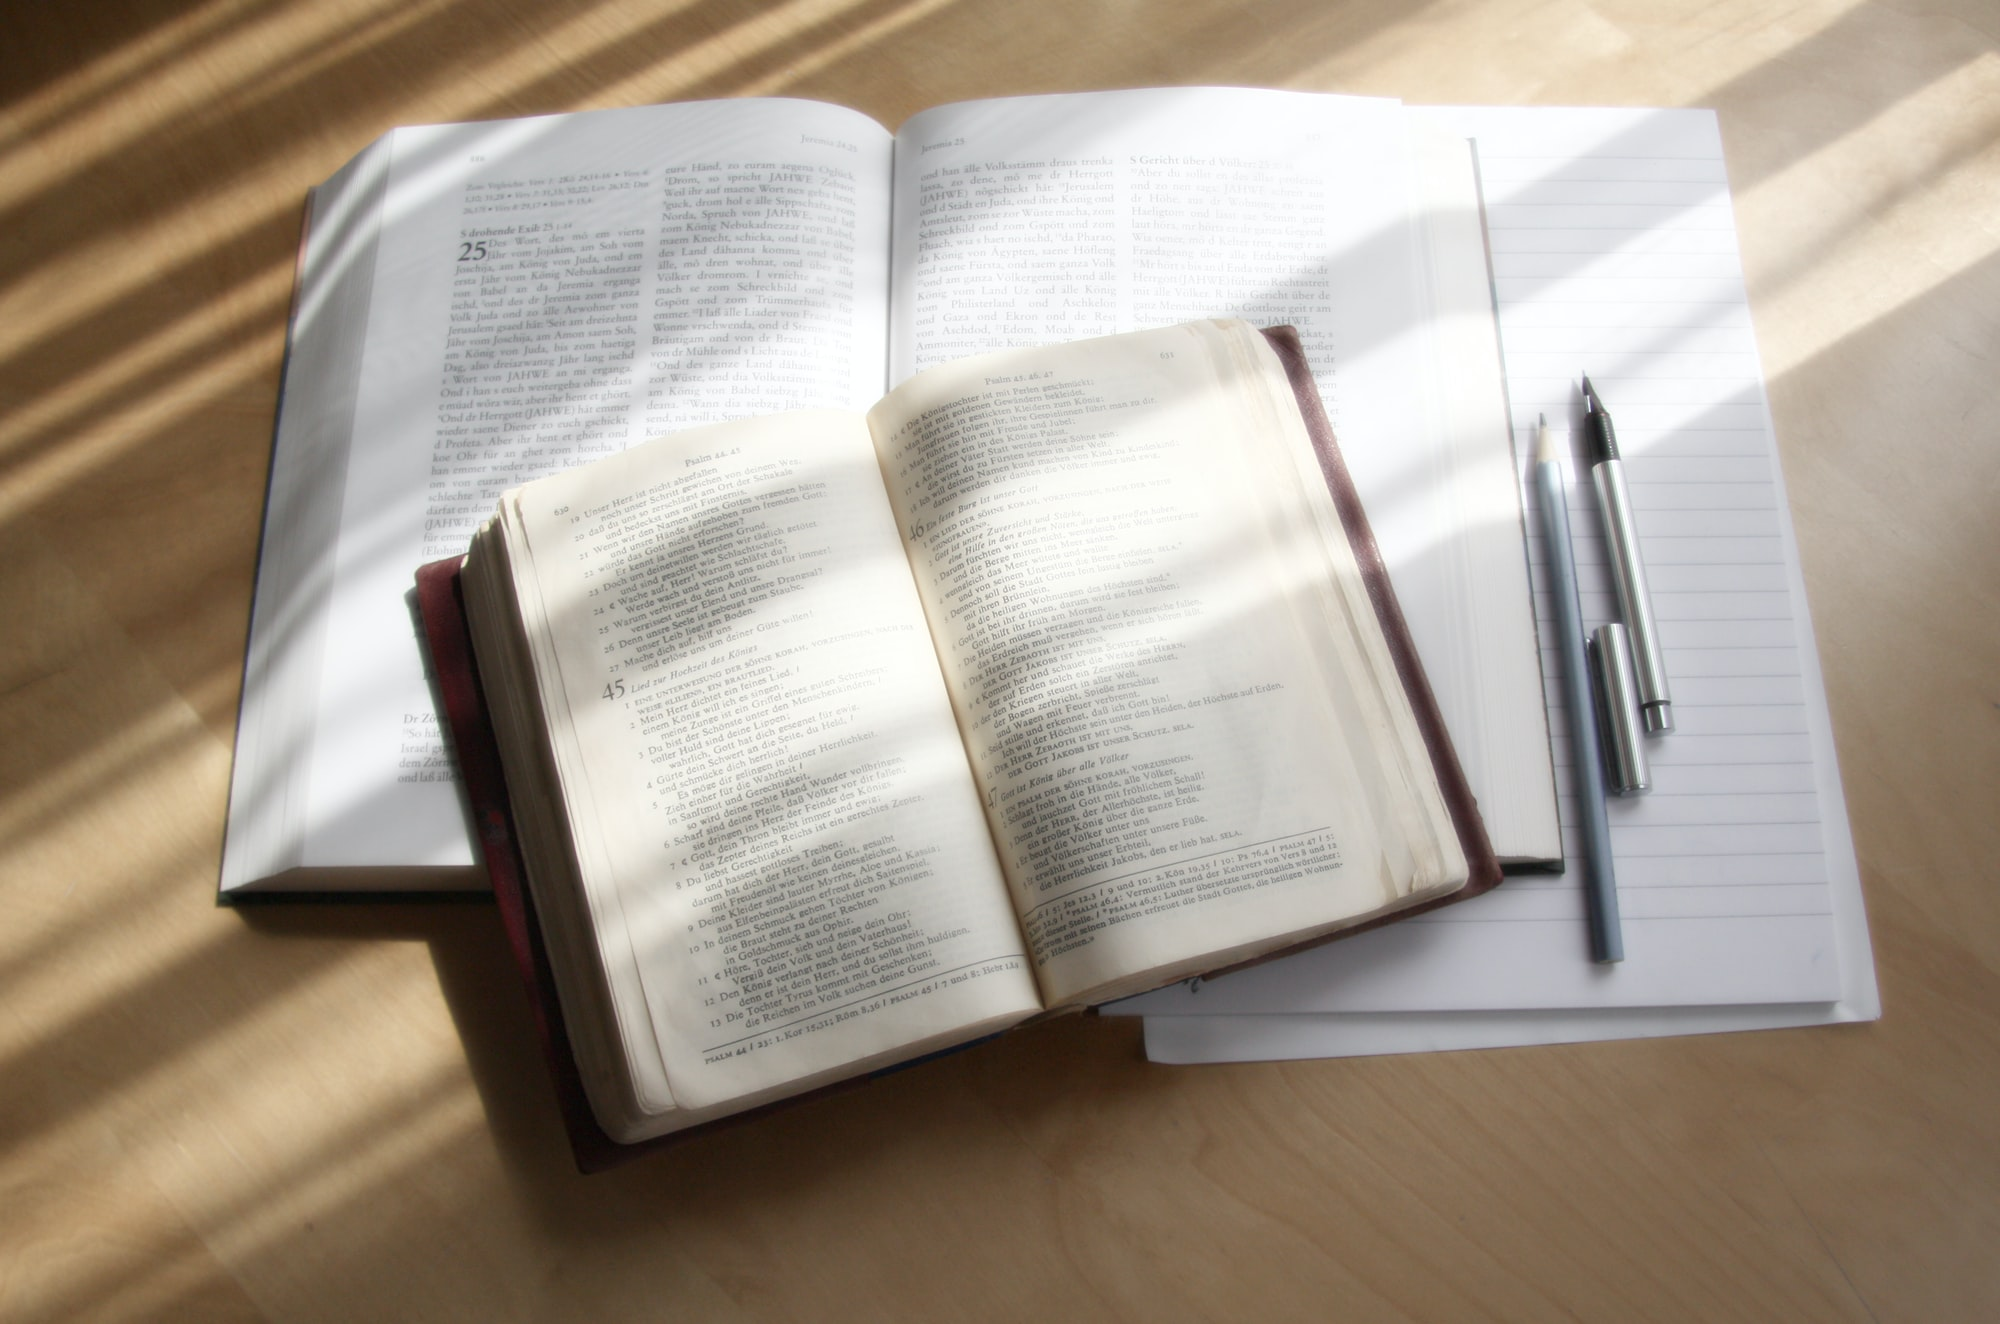 Bible open book, Bible studywith pencils